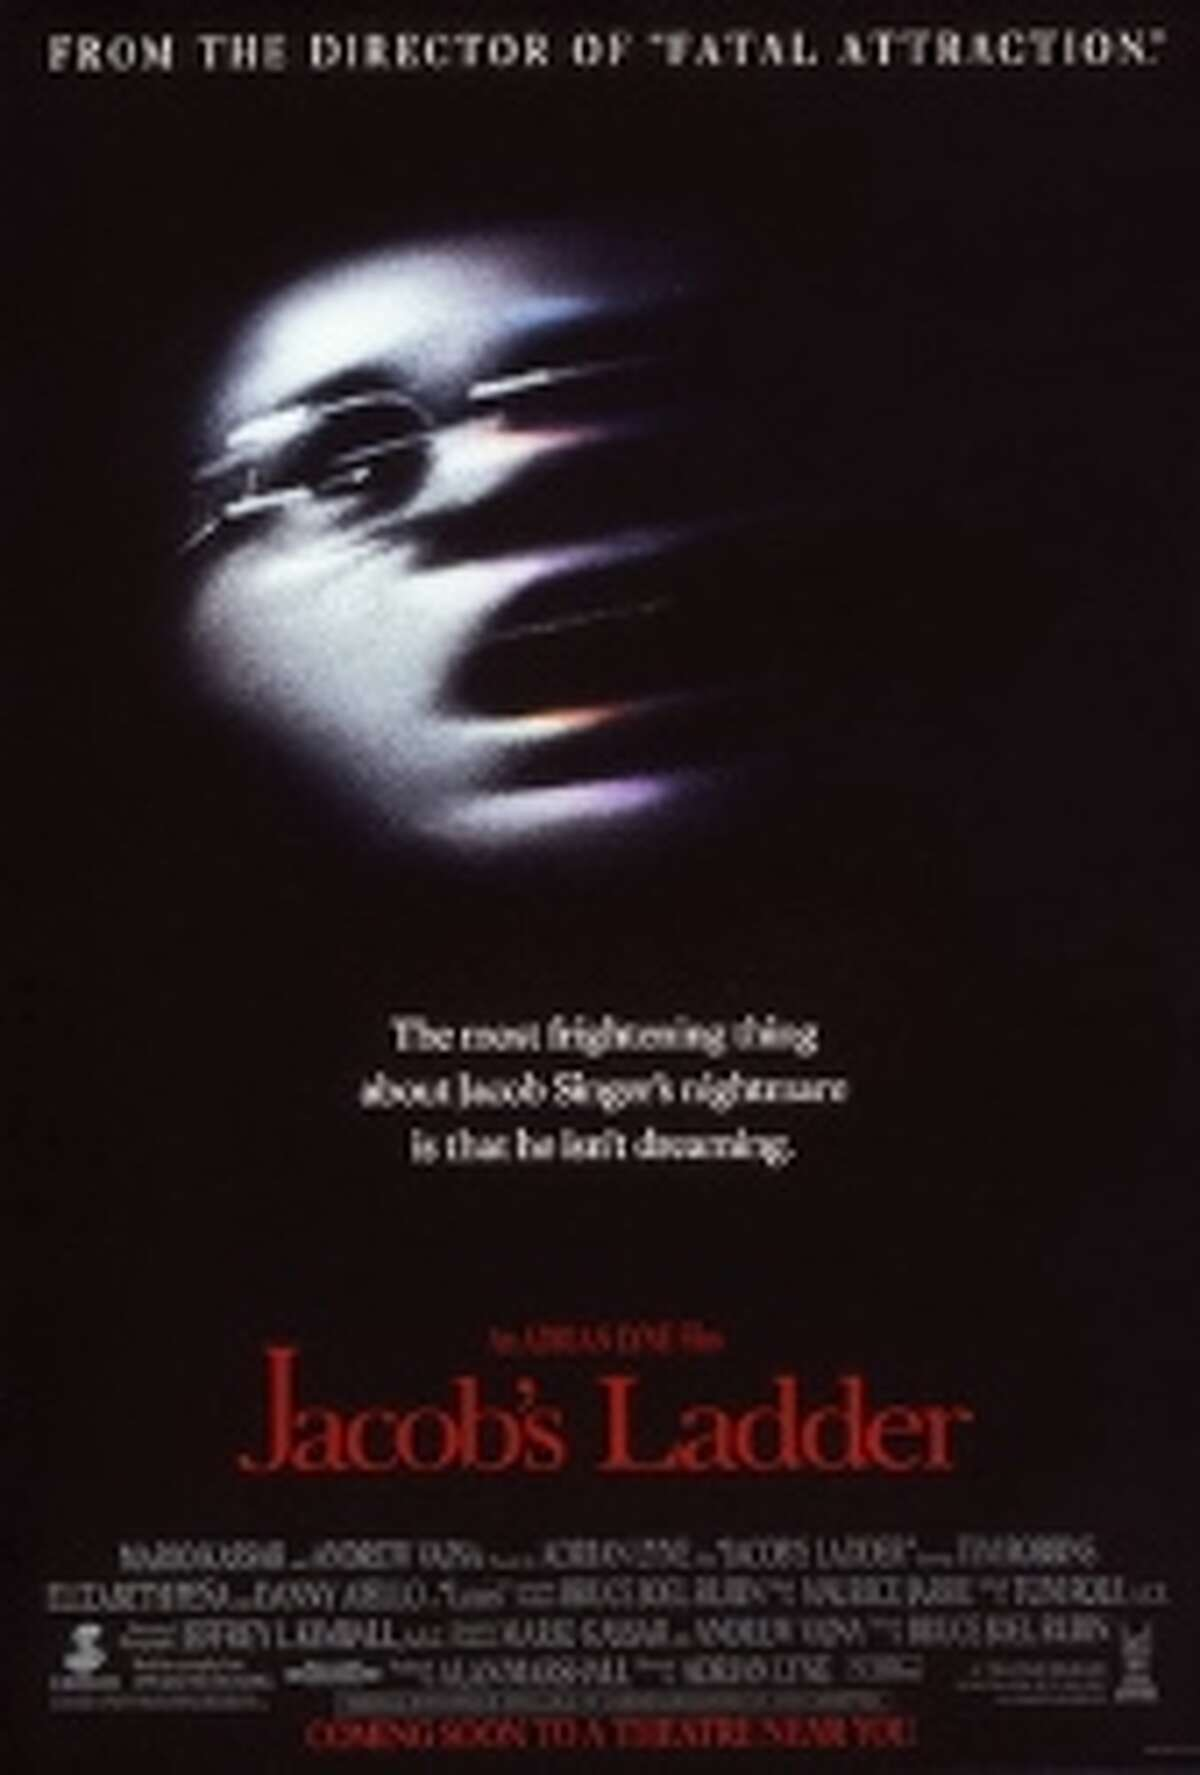 Jacob's LadderA Vietnam War veteran (Tim Robbins) struggles with strange flashbacks and hallucinations until he can't tell real life from his own dream. Directed by Adrian Lynn and featuring some of the most memorable body-horror ever put on celluloid,